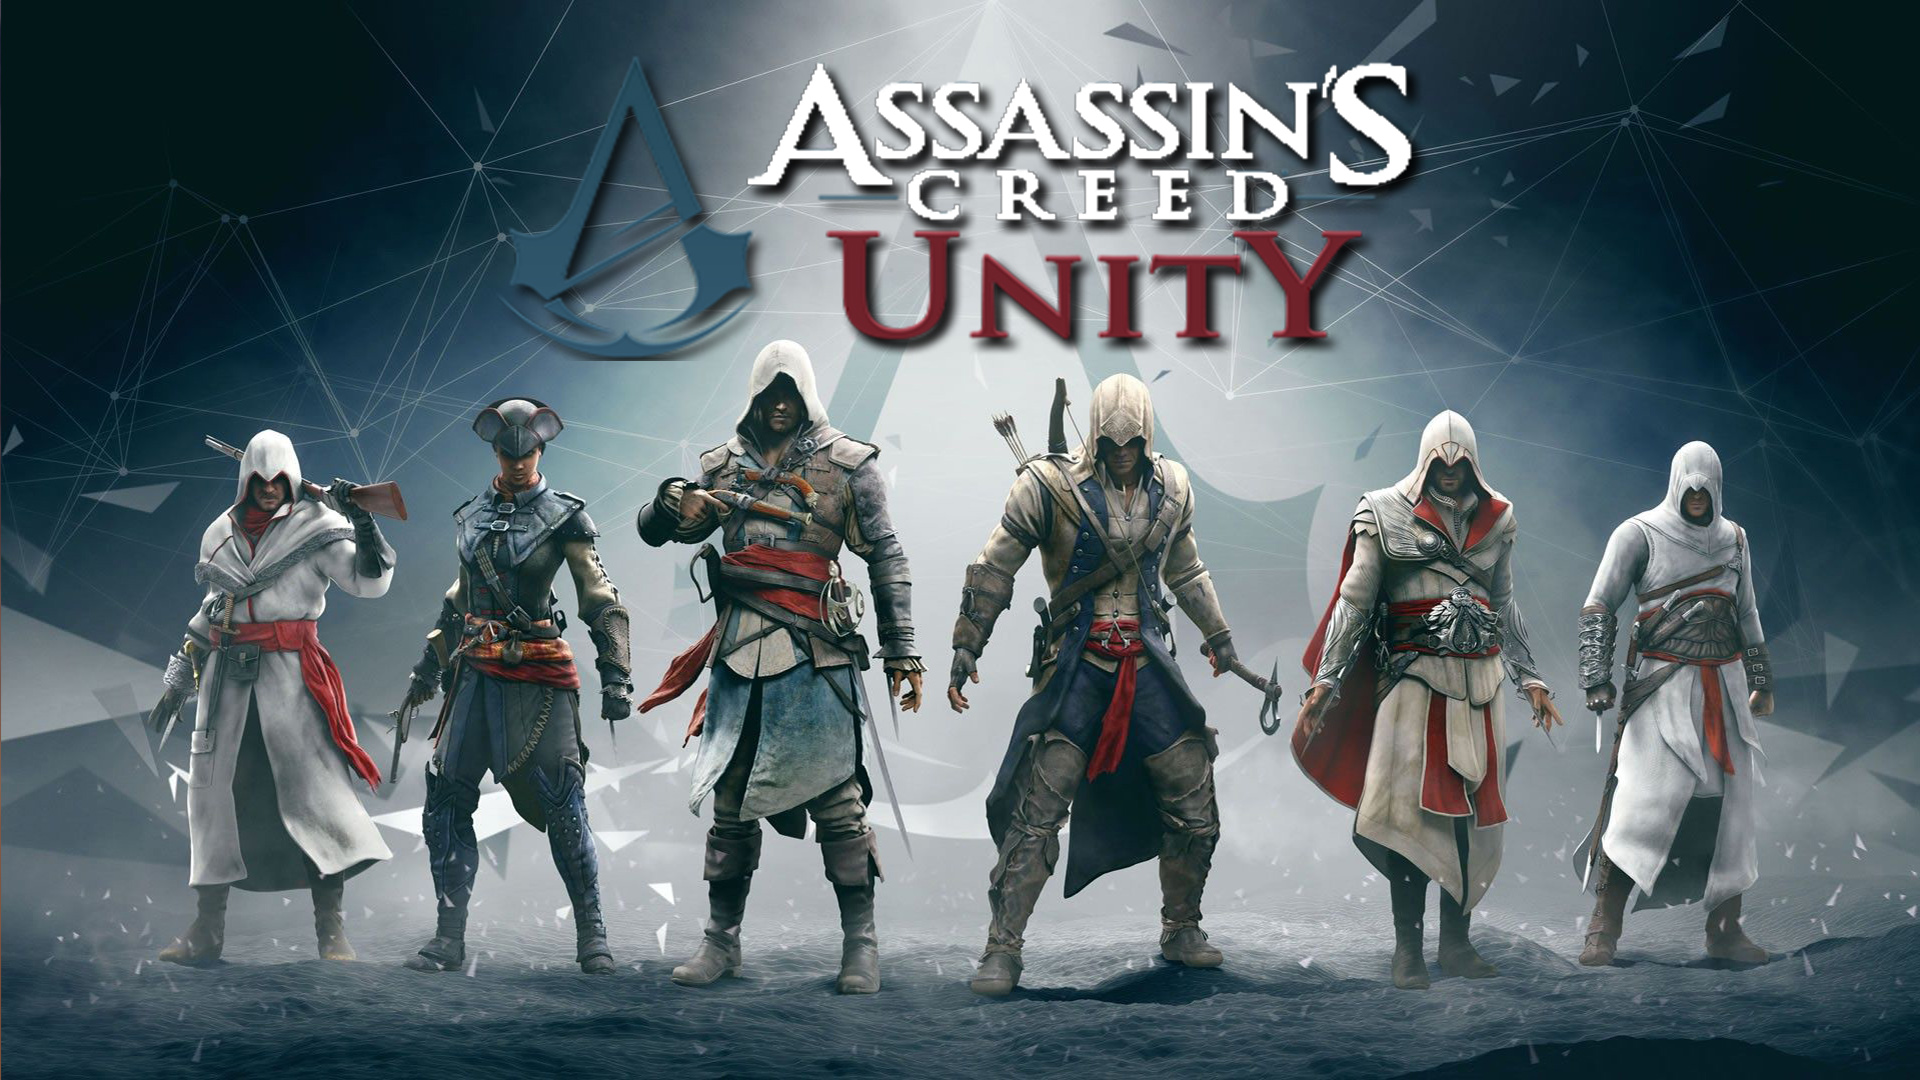 Assassin's Creed Unity Details - LaunchBox Games Database